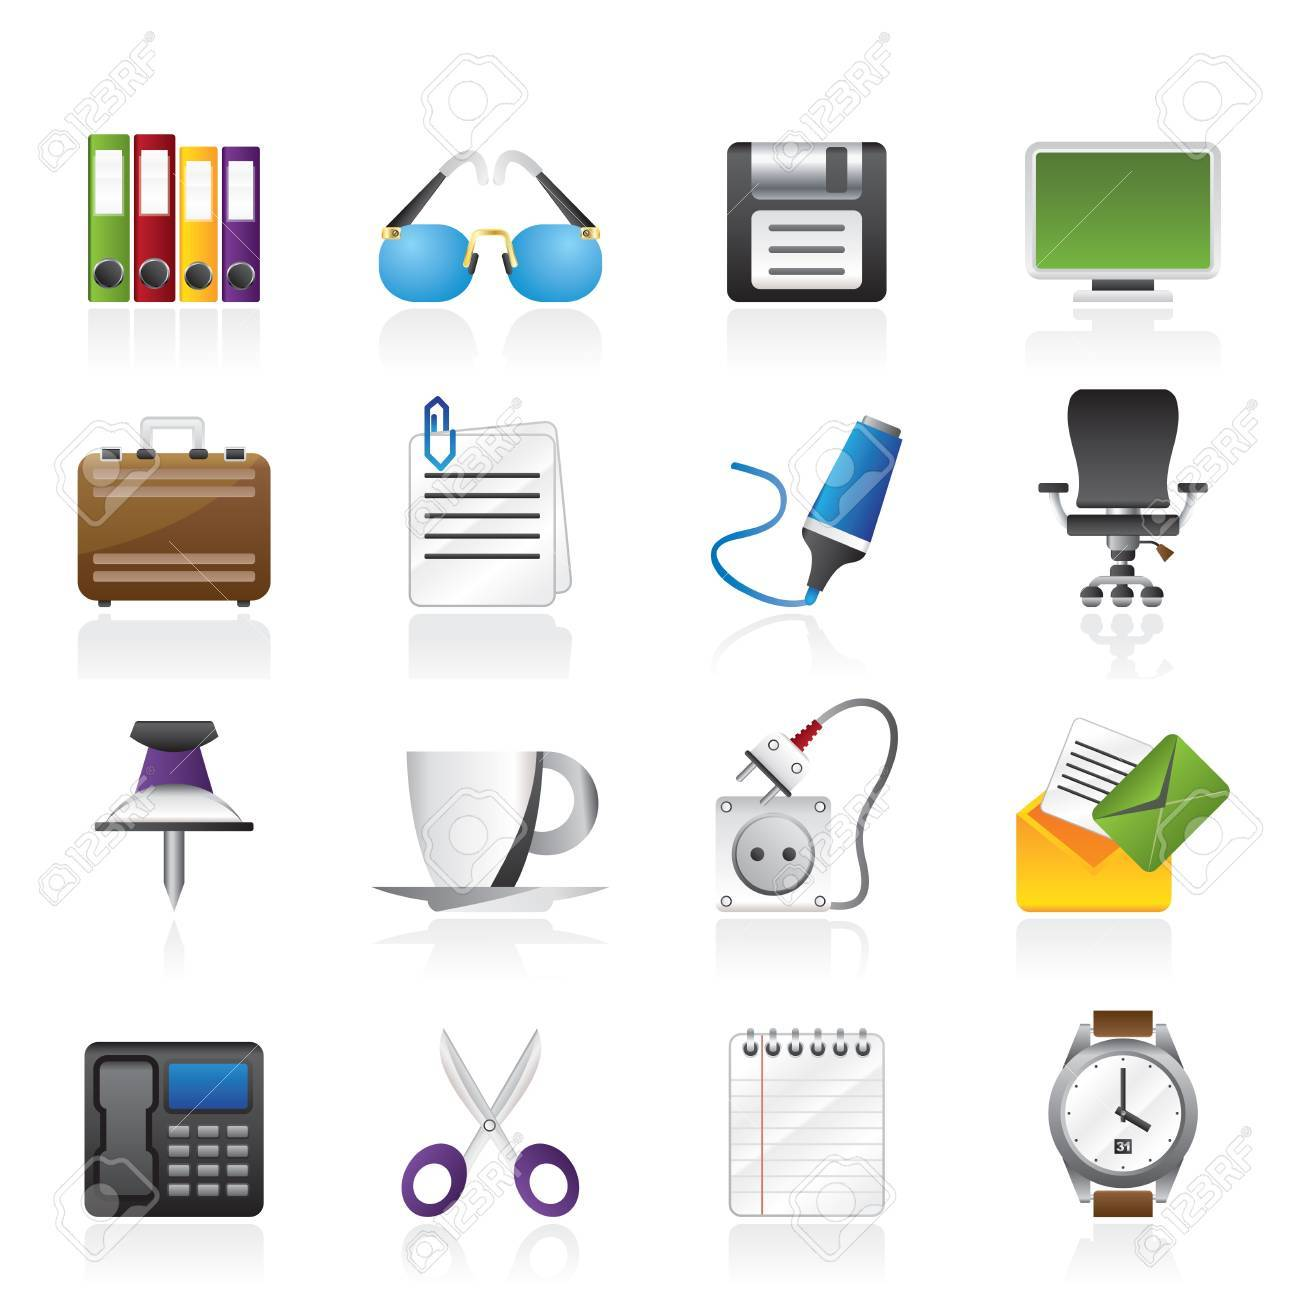 Business and office objects icons - icon set - 16452251